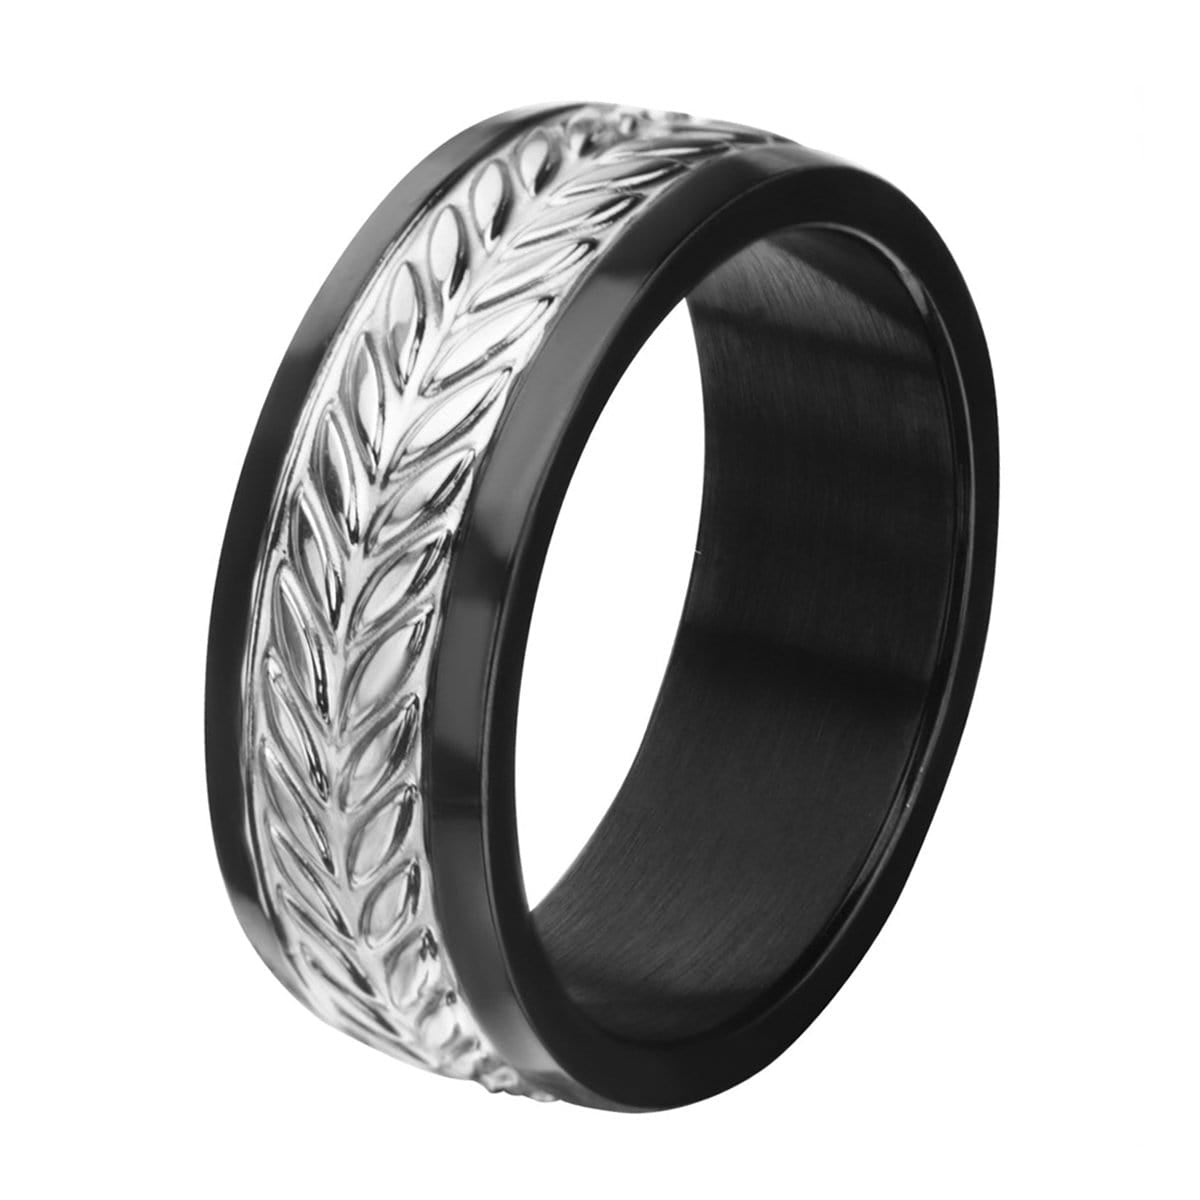 Black & Silver Stainless Steel Leaf Patterned Band